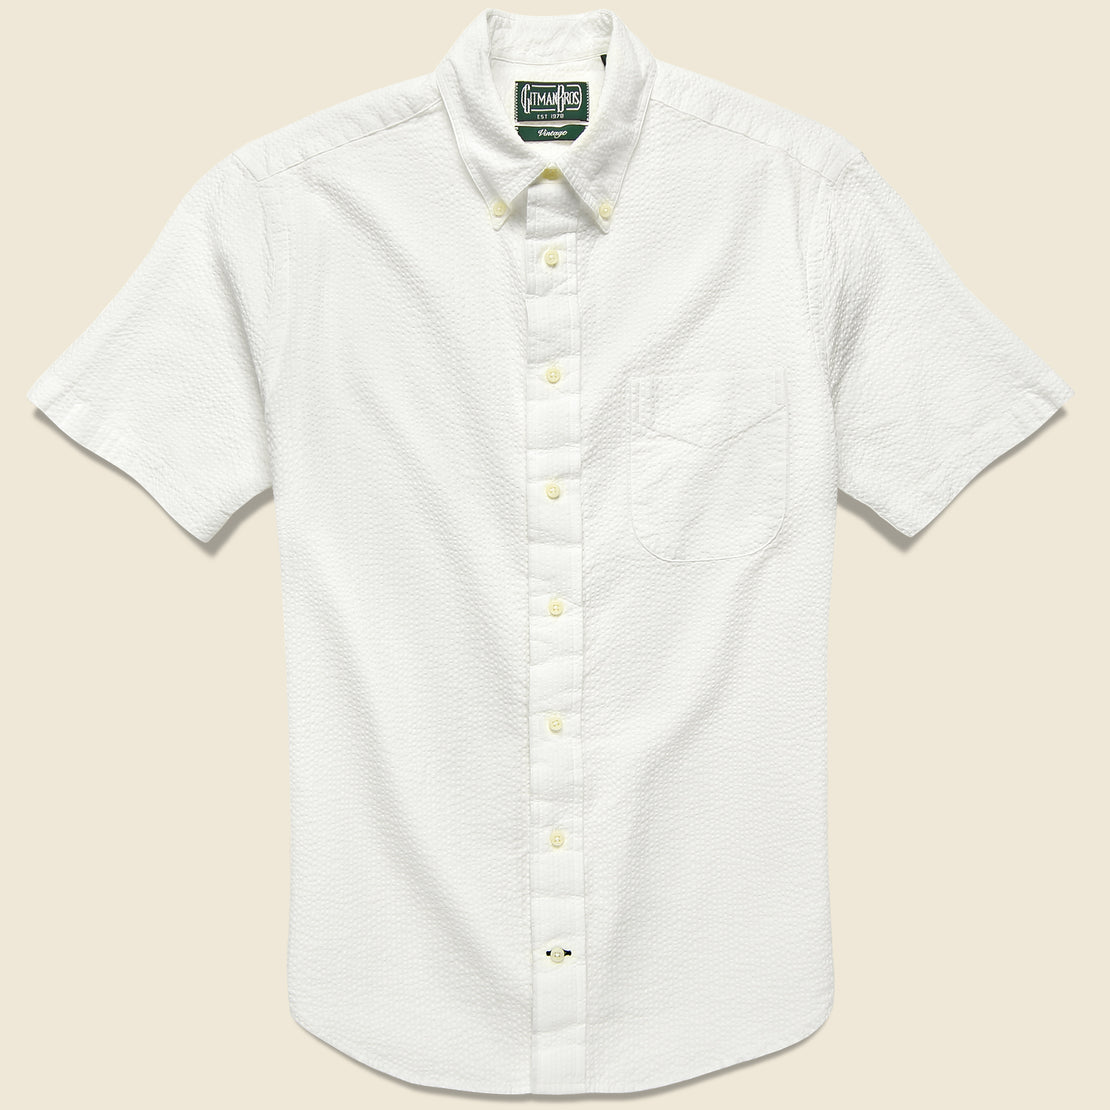 Gitman Vintage Seersucker Shirt - White